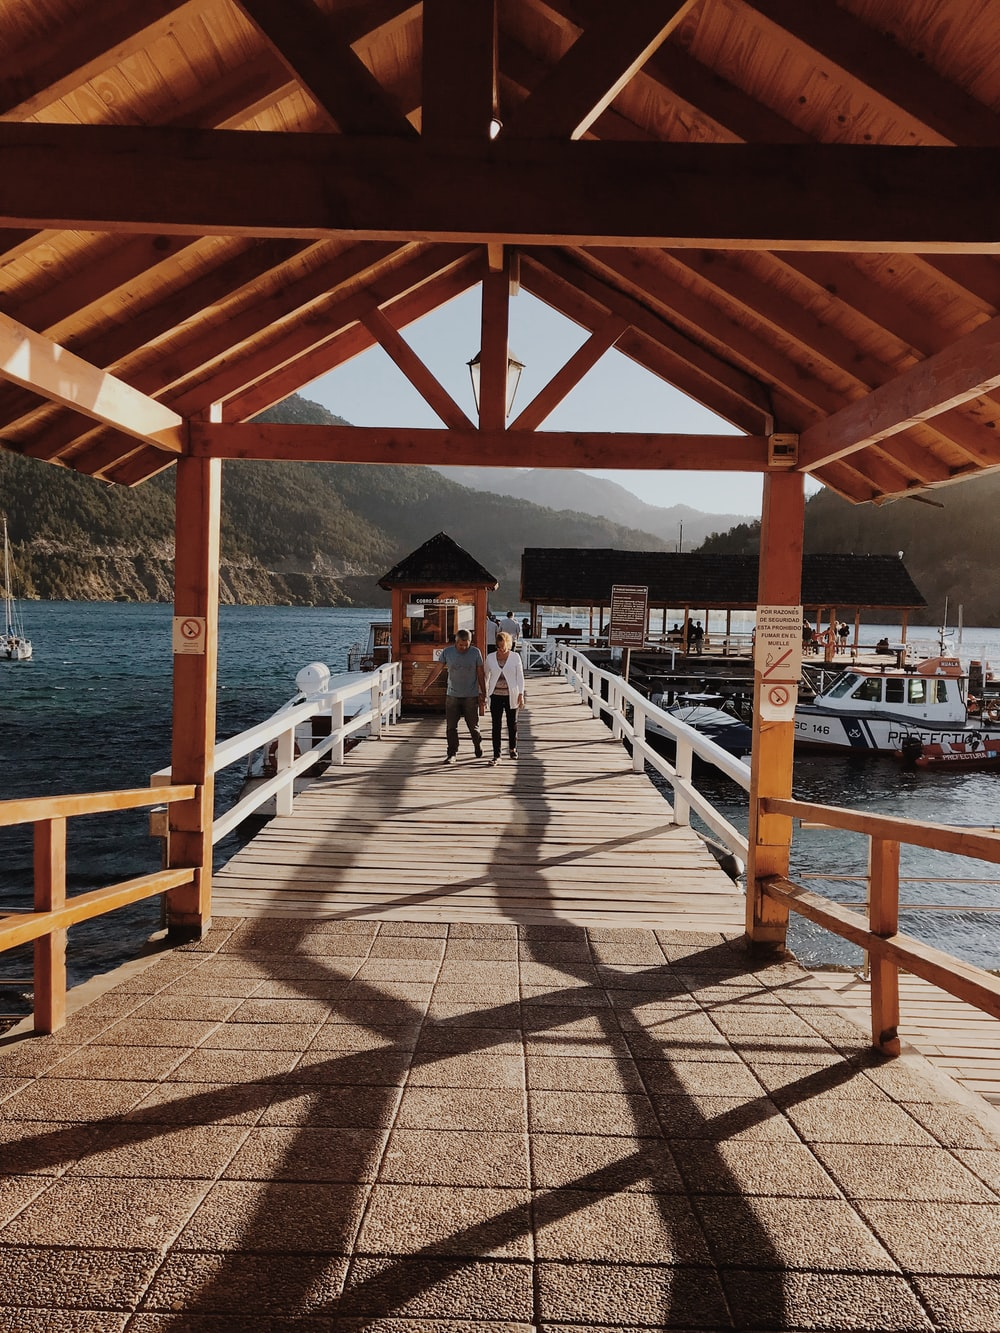 man and woman walks on dock during daytime